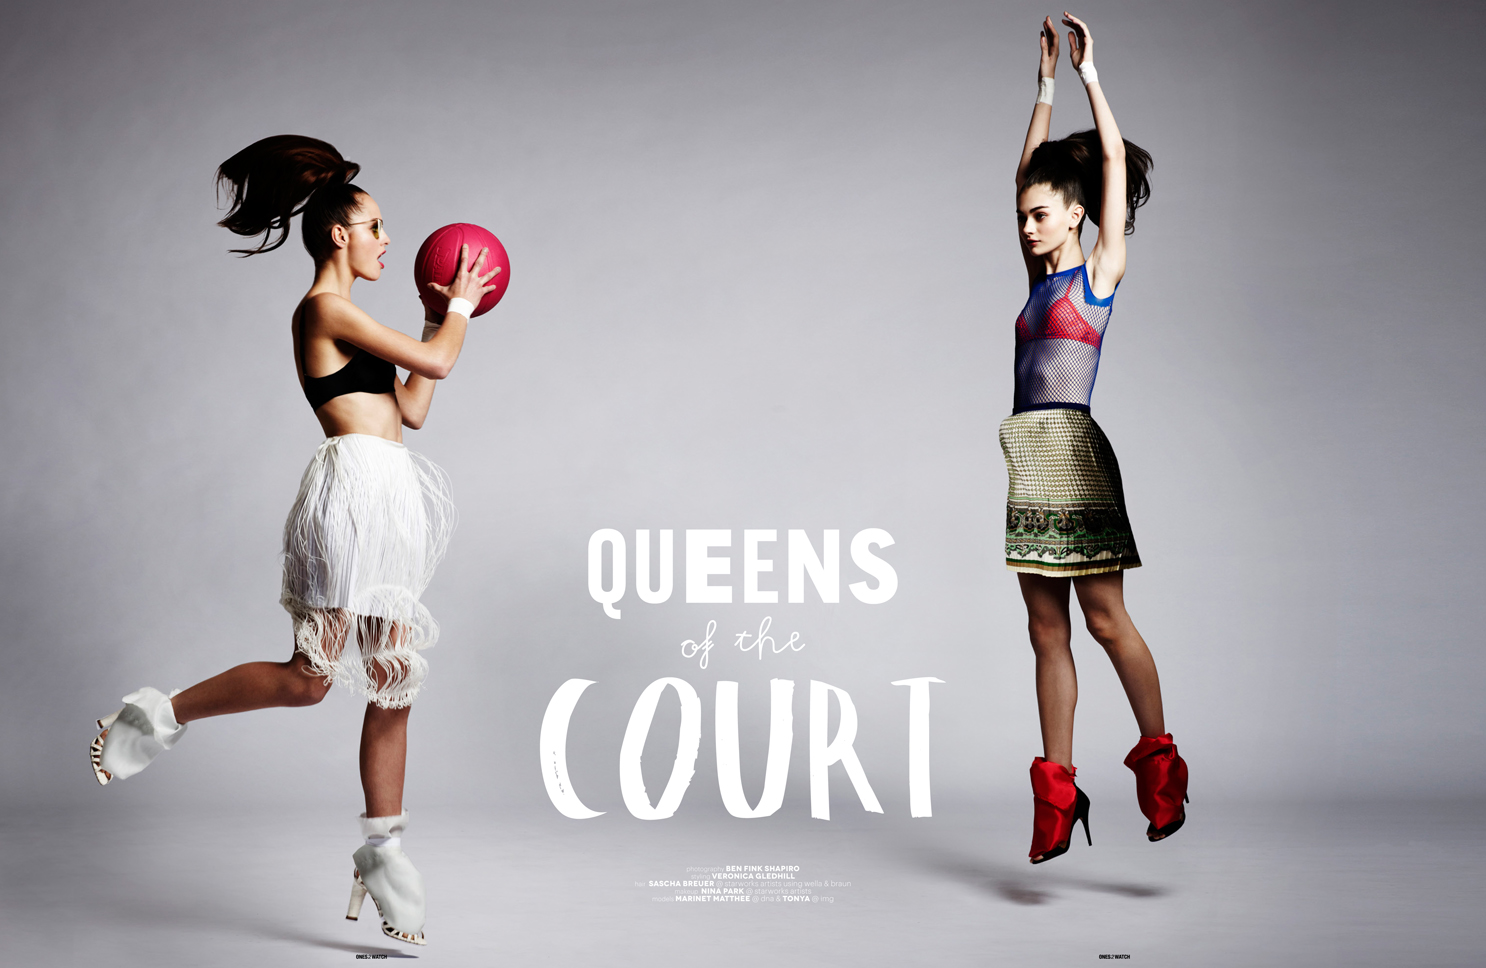 Sporty Spice queens of the court ball skirts models heels